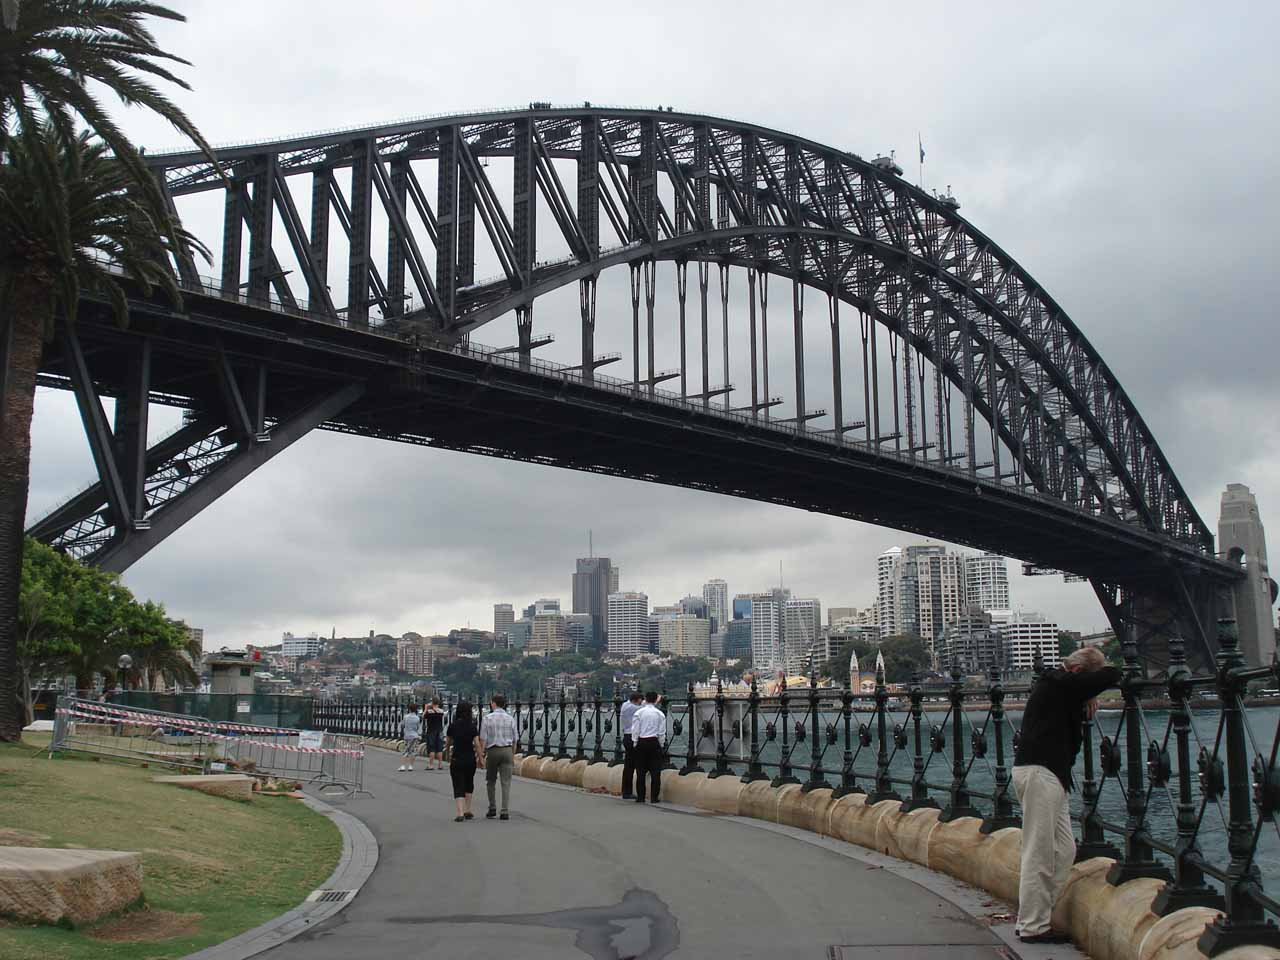 Walking beneath the Sydney Harbour Bridge